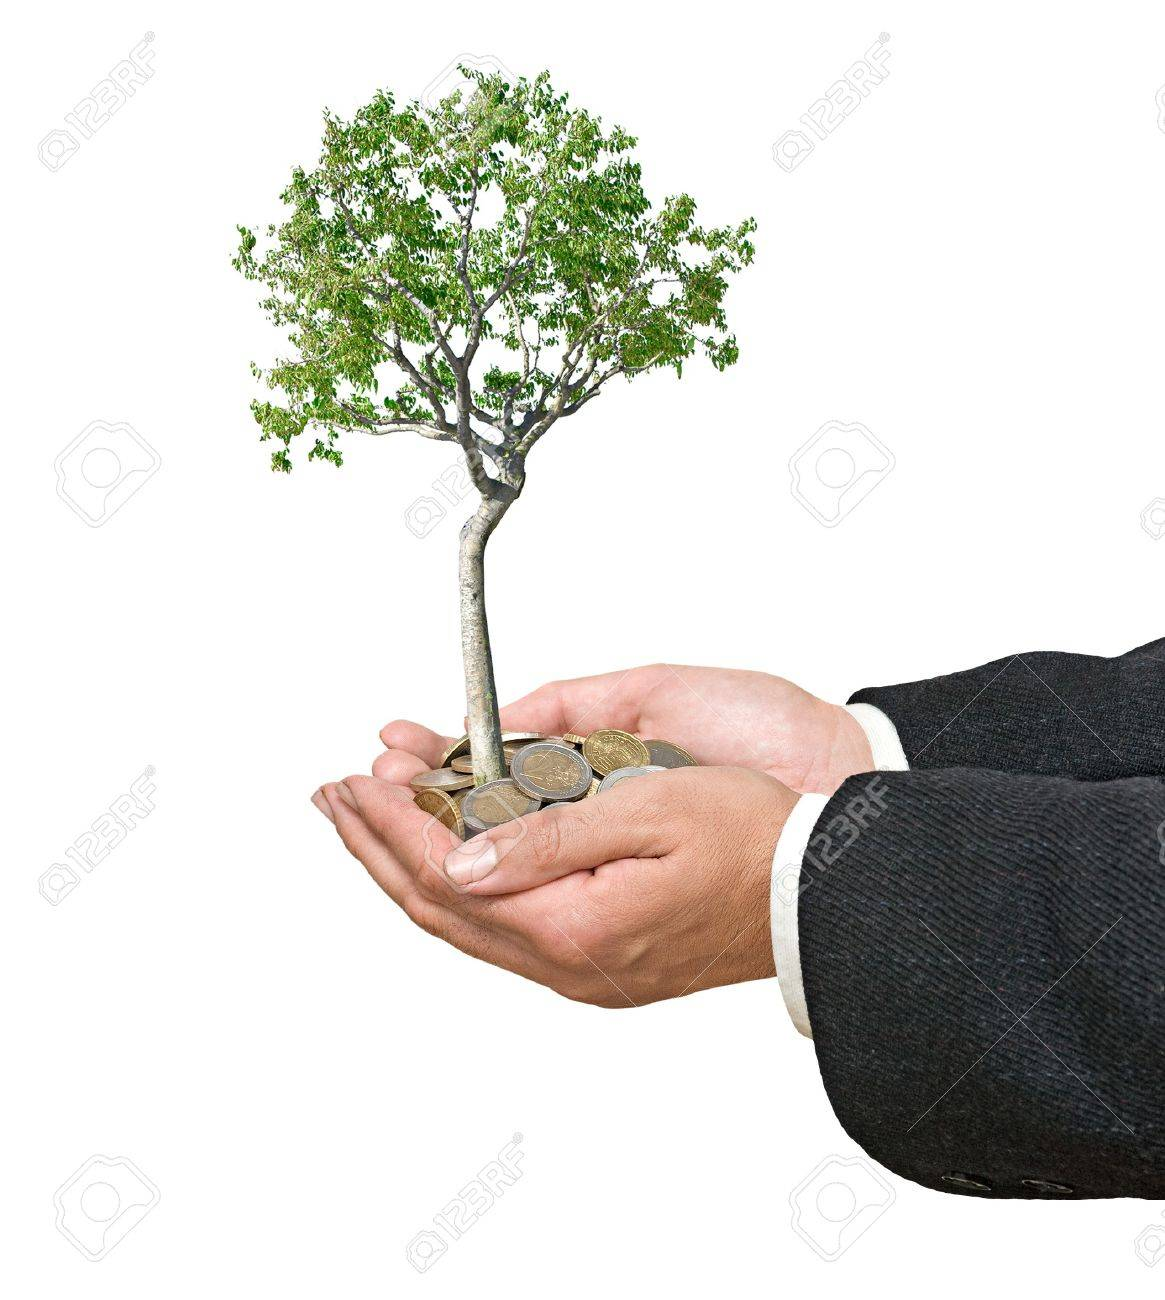 Palms with a tree growng from pile of coins Stock Photo - 8167159